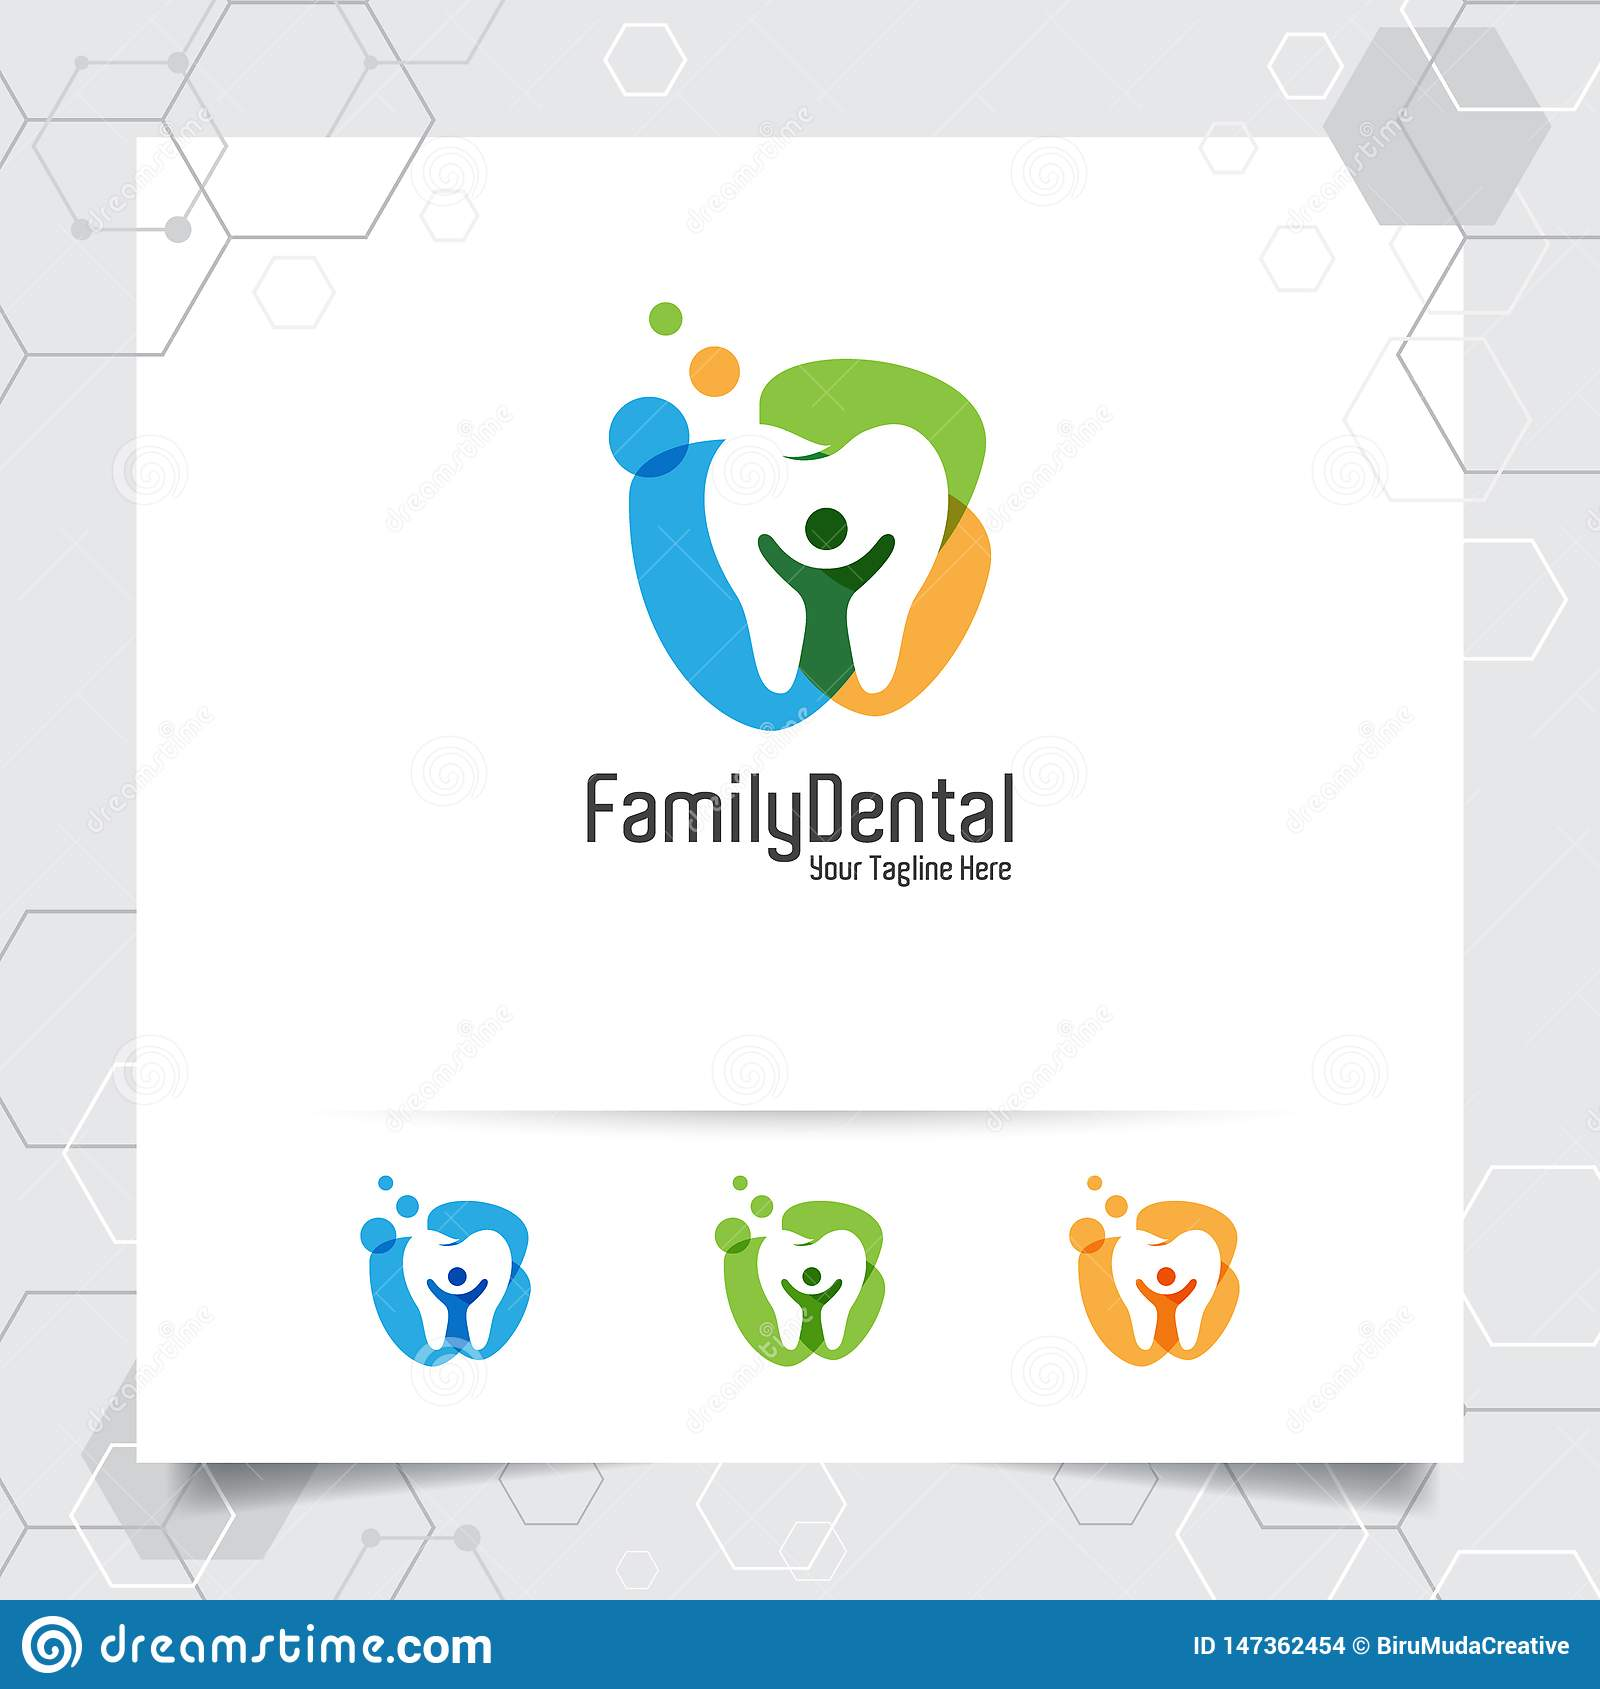 Dental logo vector design with concept of negative space people. Dental care and dentist icon for hospital, doctor and dental